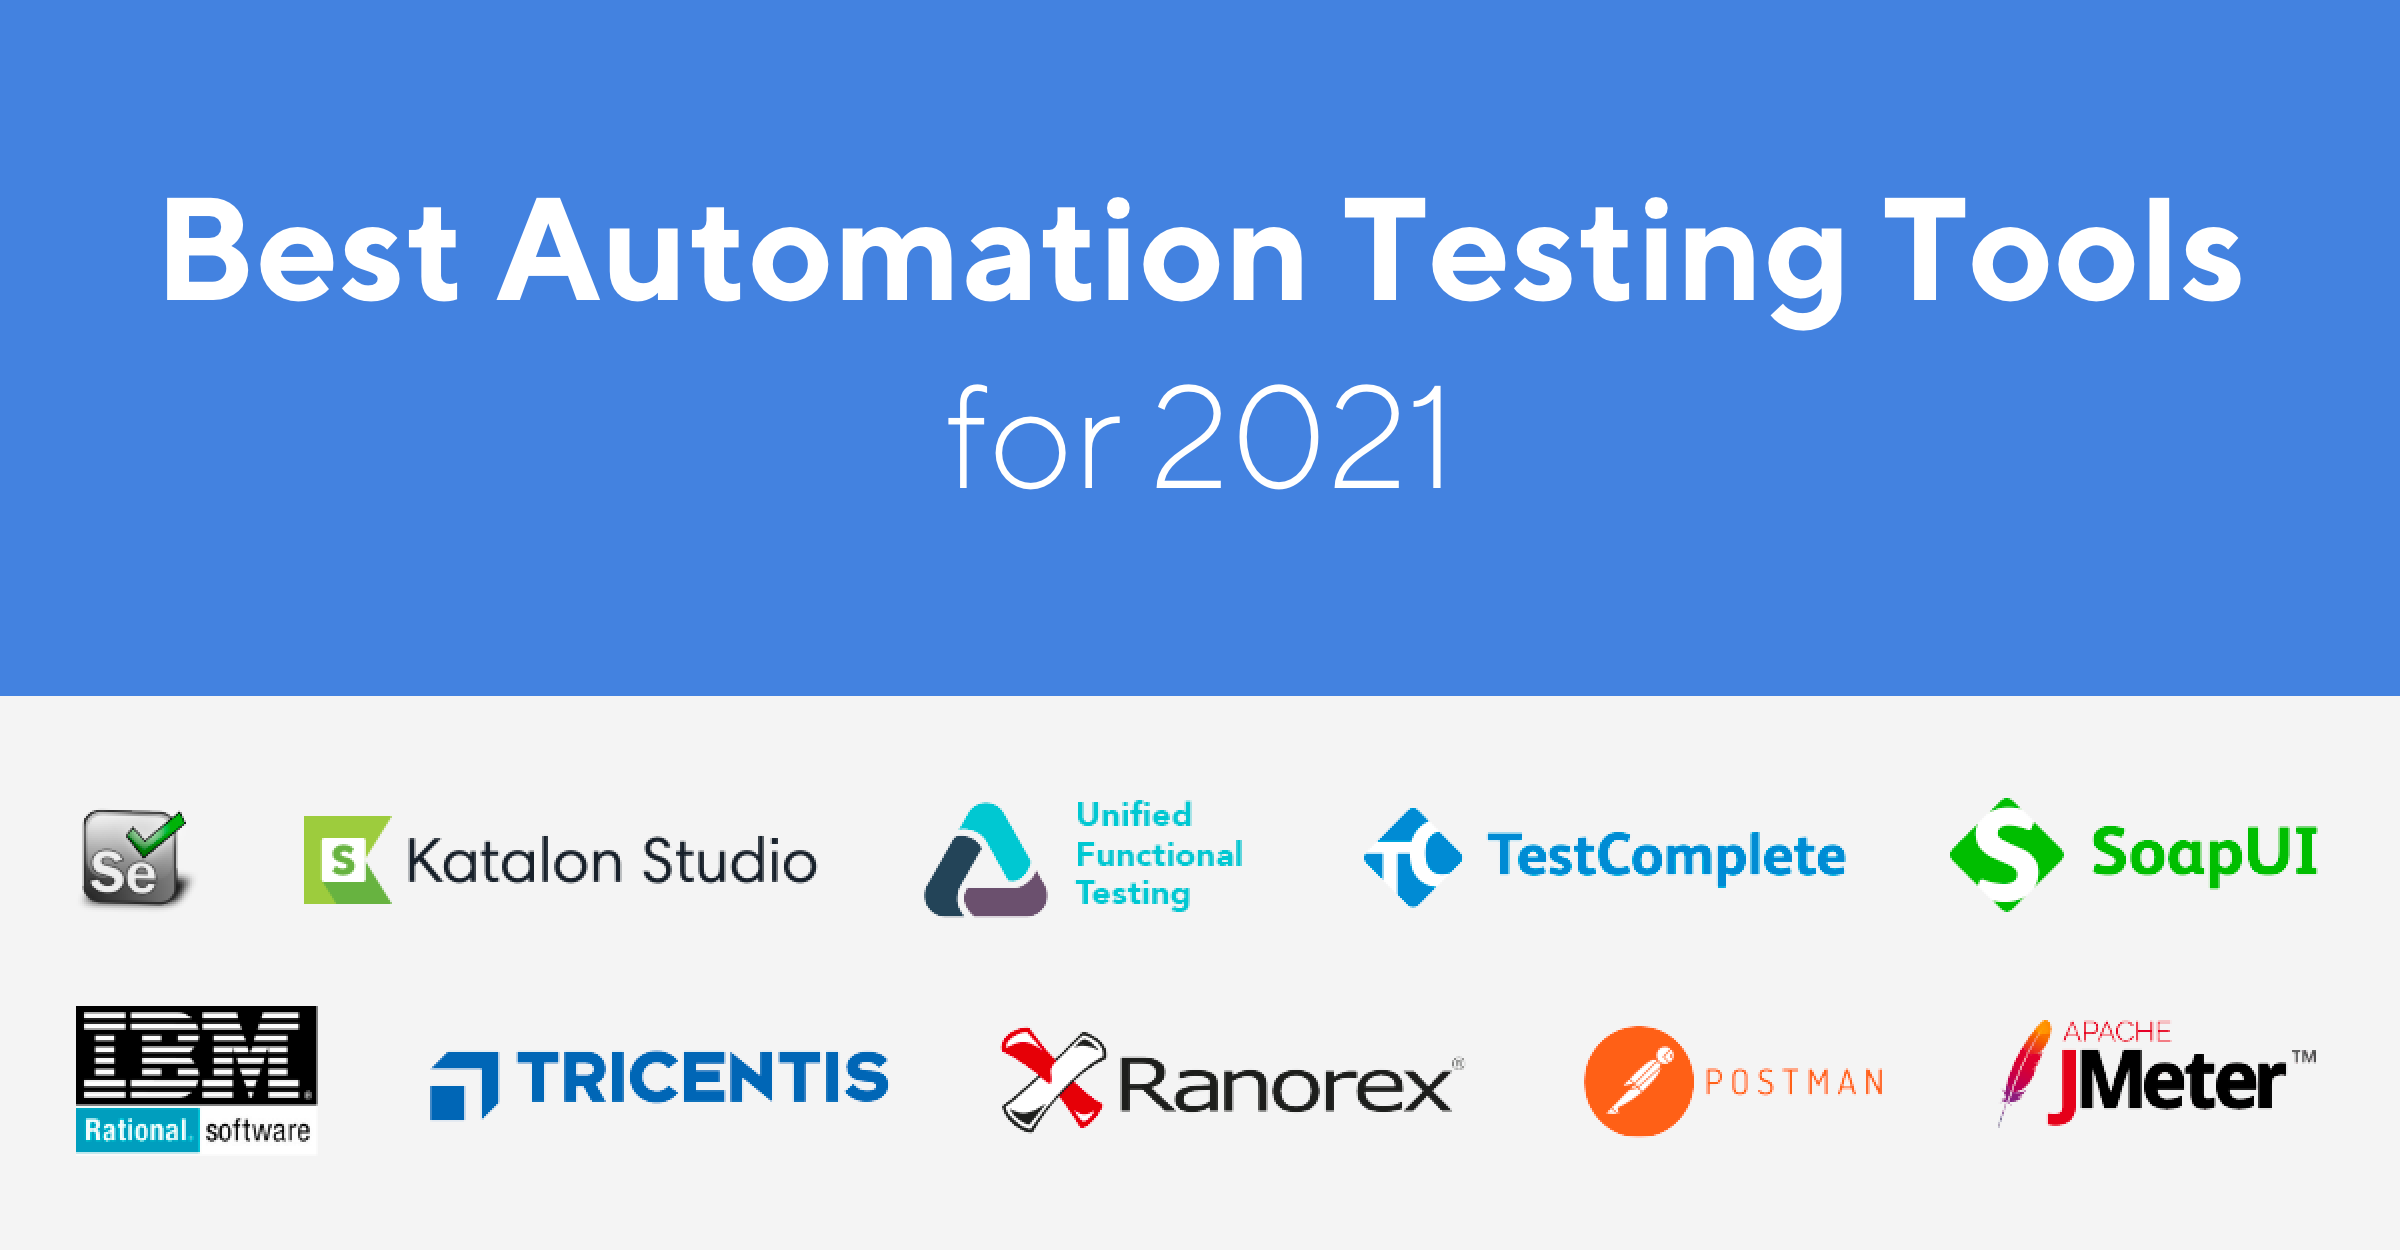 5 Best Automation Testing Trends in 2021